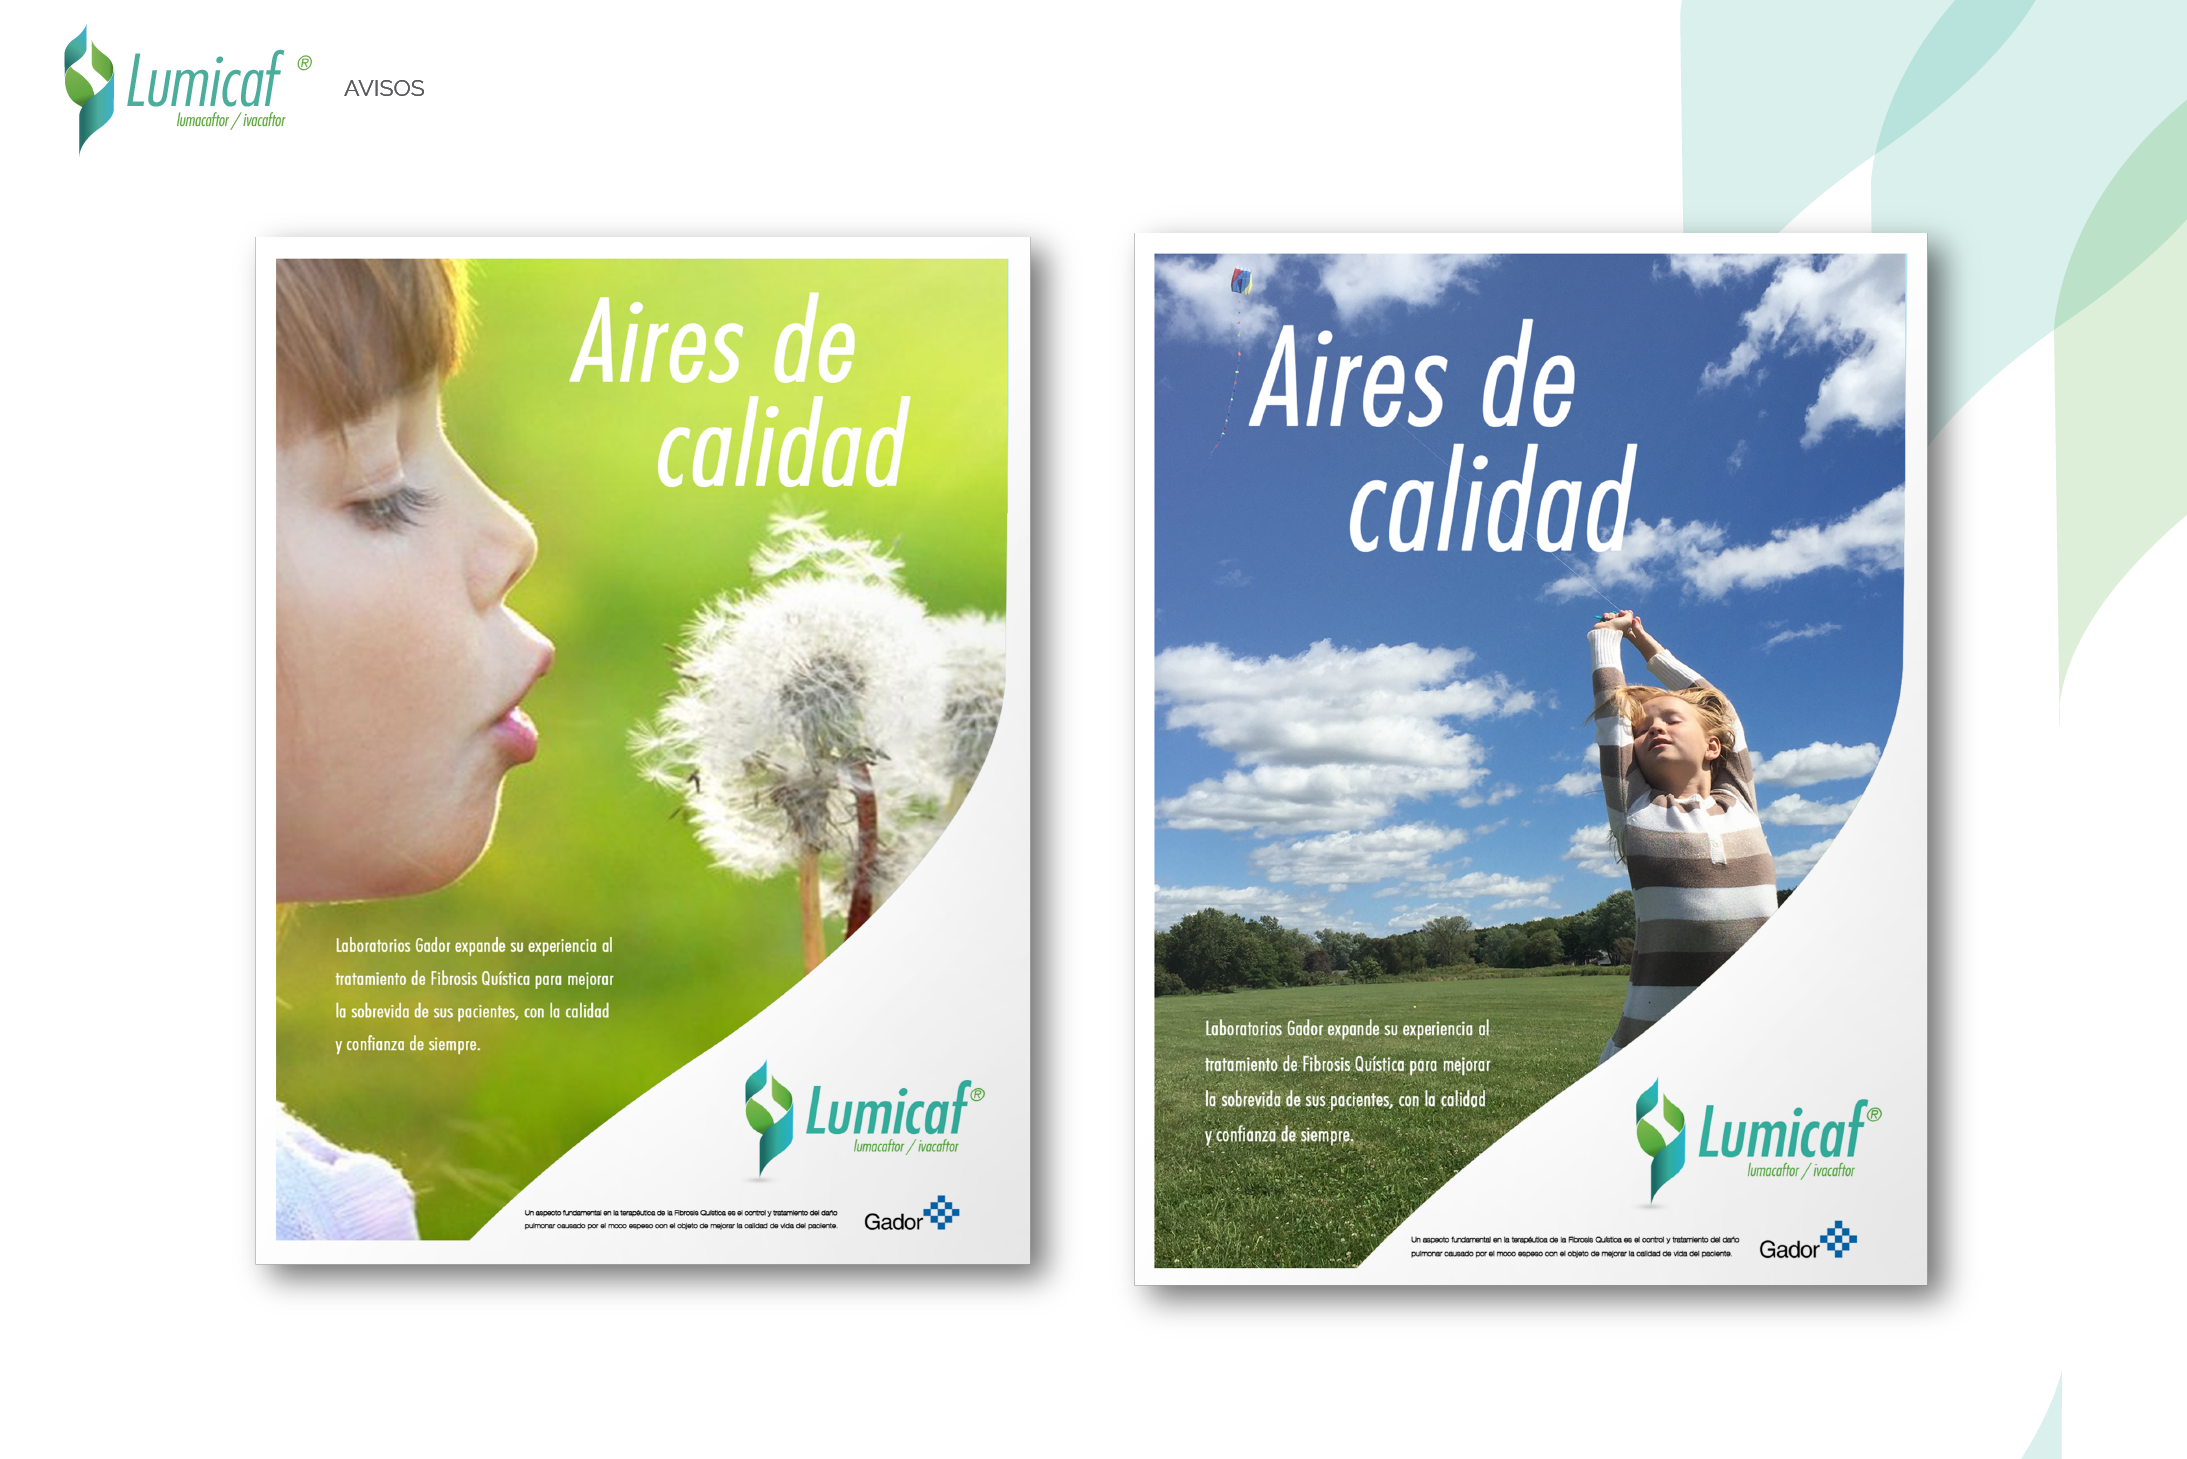 Lumicaf – Medicamento